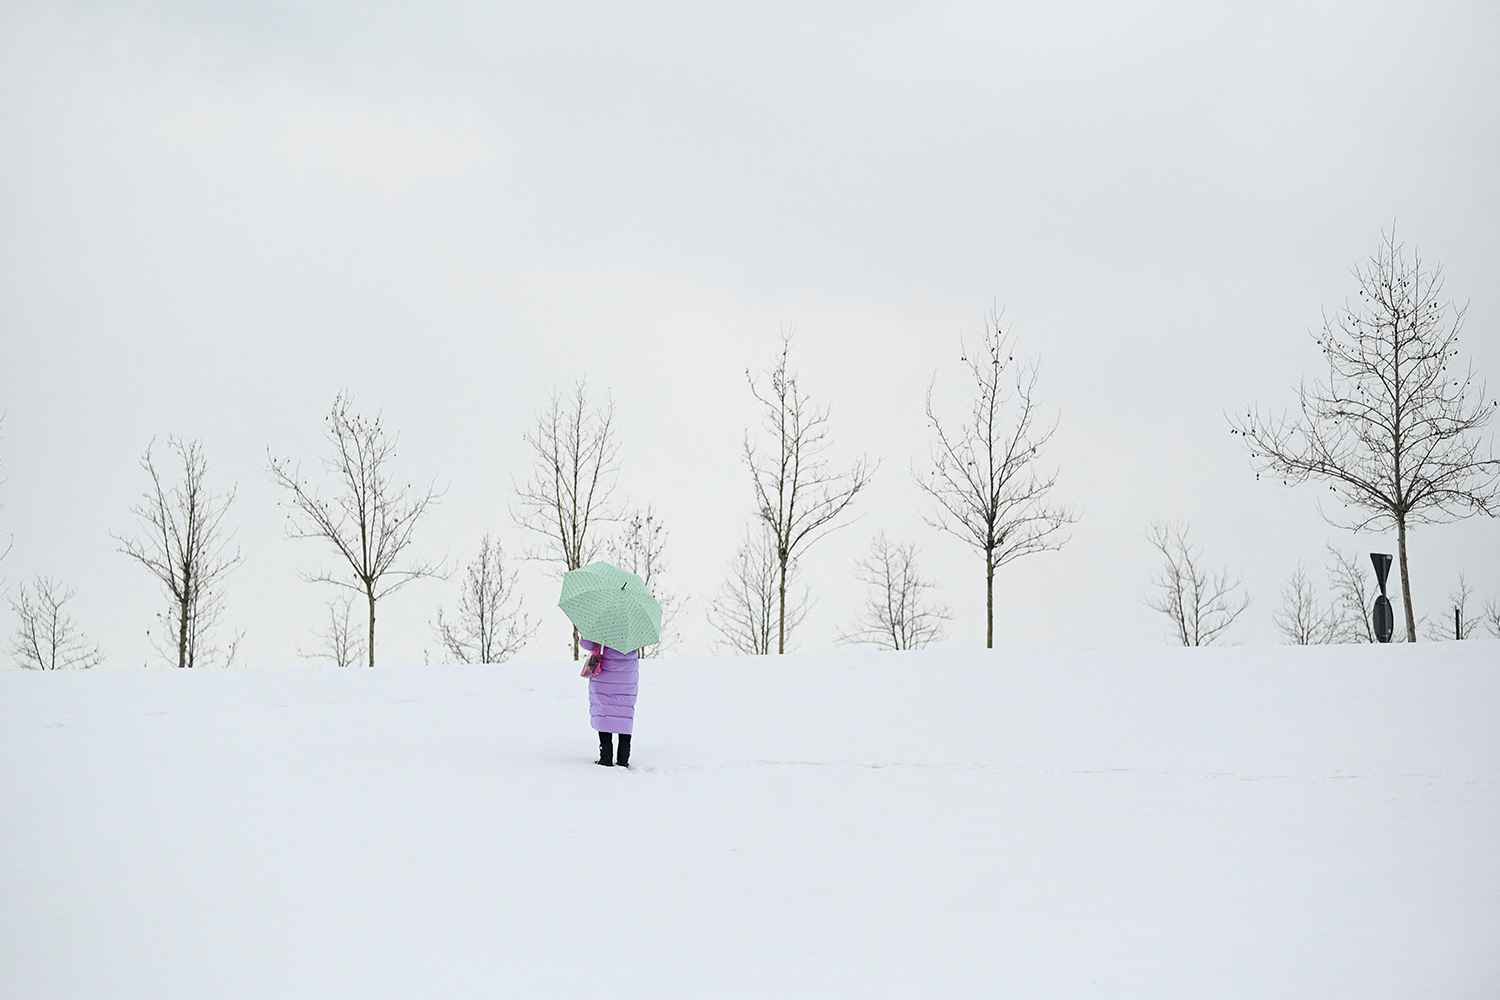 A woman walks along a snowy road near Pristina, Kosovo, on March 24 following a week of heavy snowfall. ARMEND NIMANI/AFP via Getty Images